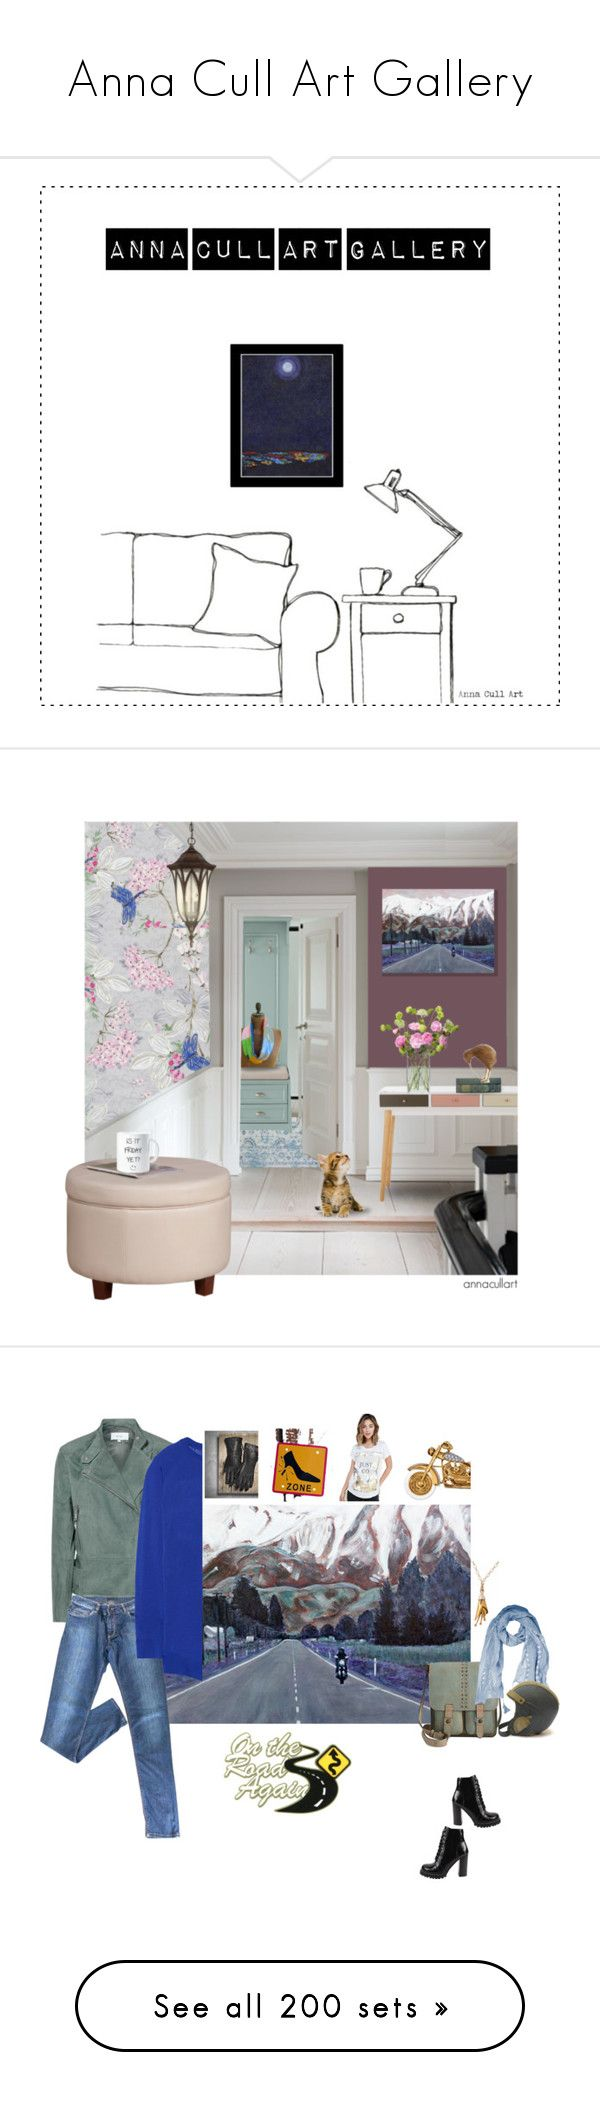 """""""Anna Cull Art Gallery"""" by annacullart ❤ liked on Polyvore featuring art, interior, interiors, interior design, home, home decor, interior decorating, Surya, Home Decorators Collection and LSA International"""